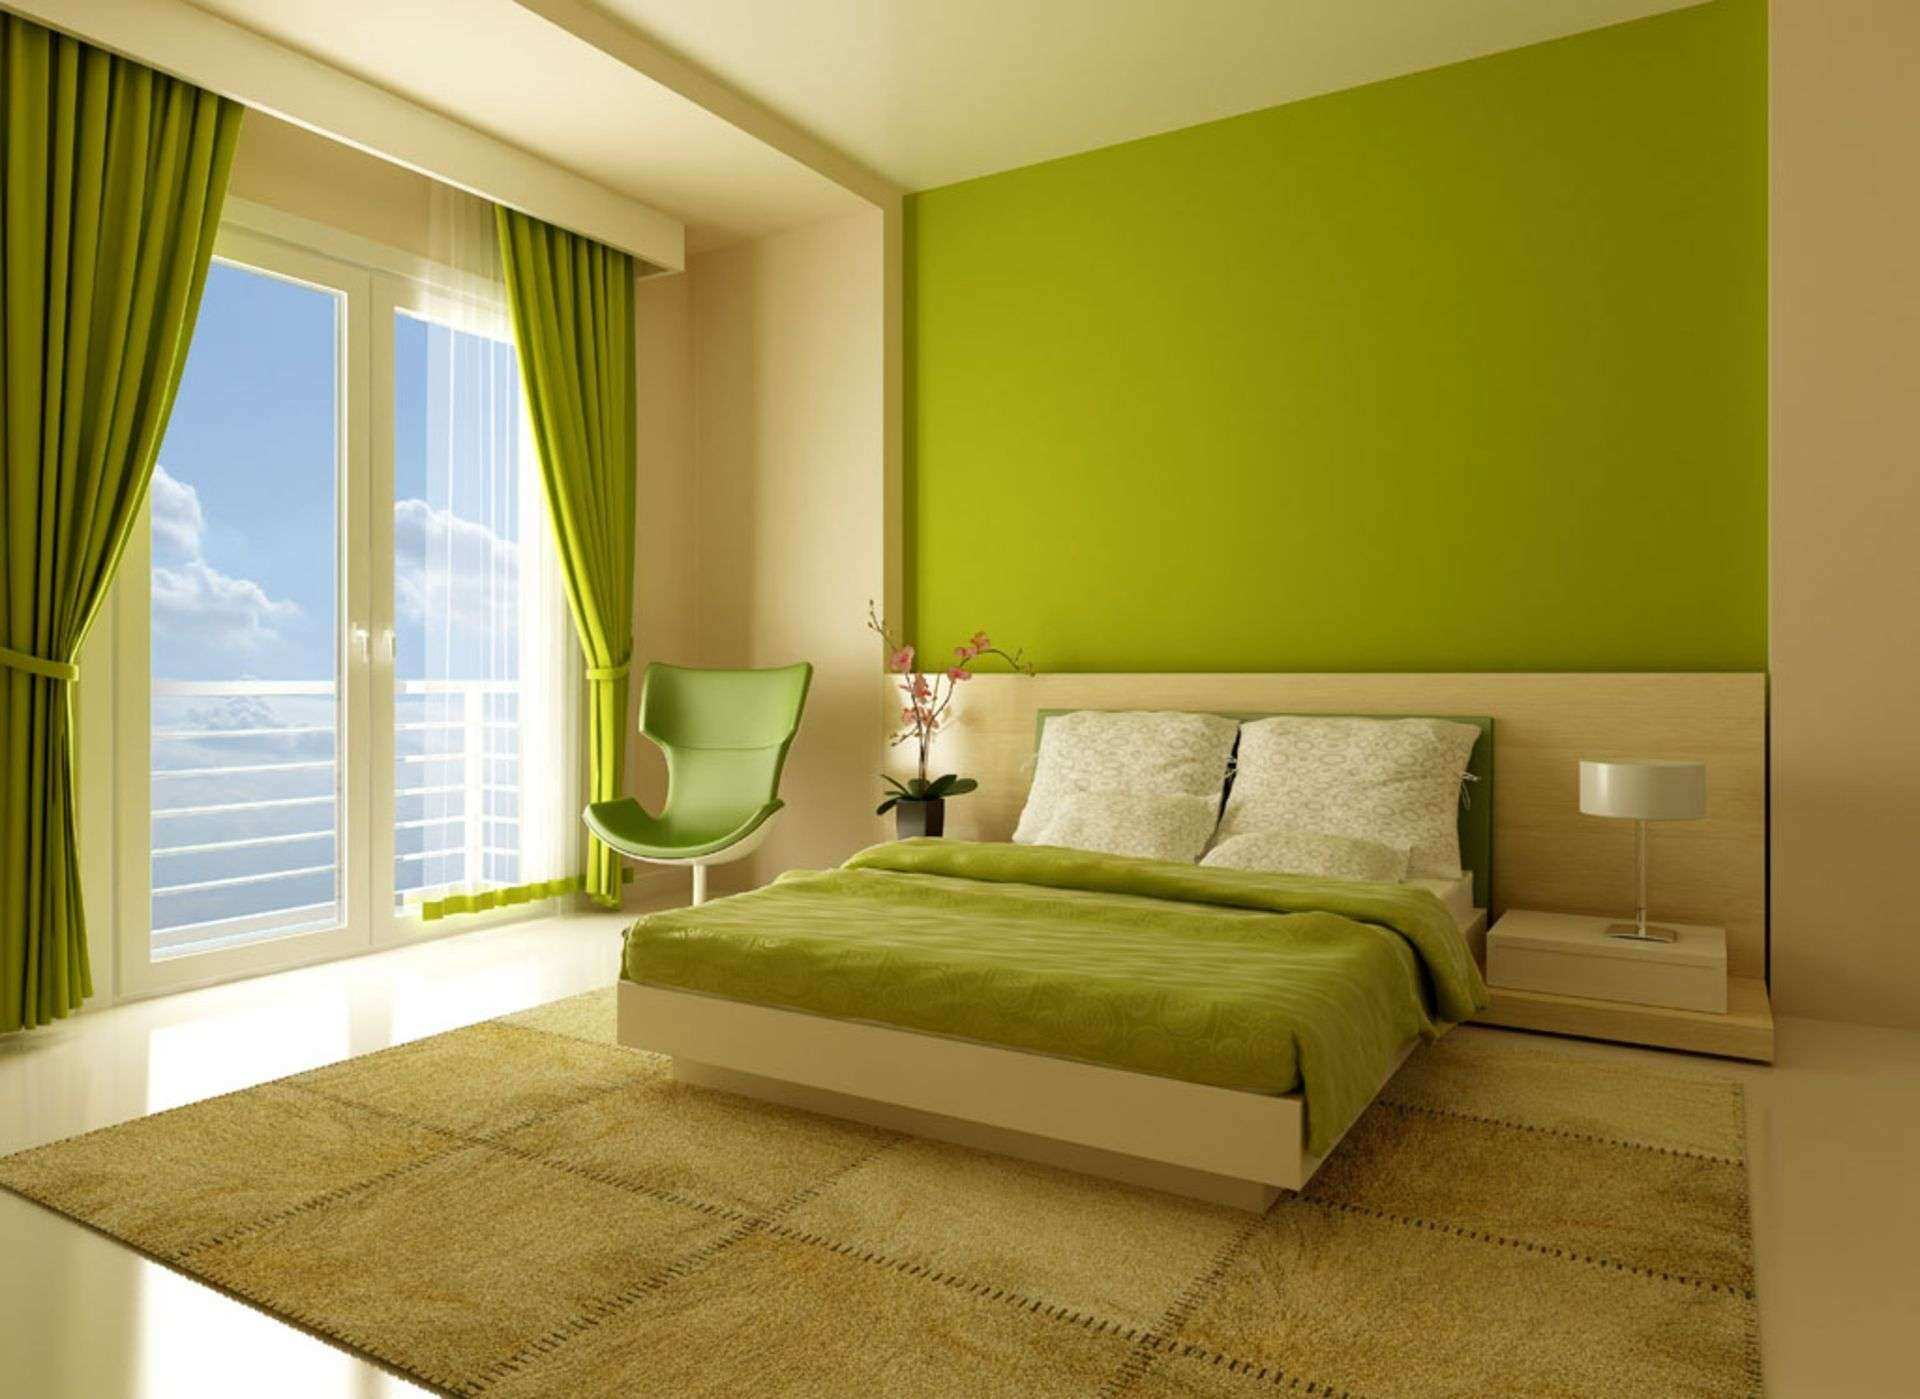 40 Unique Best Color for Bedroom Walls HopeLodgeUtah